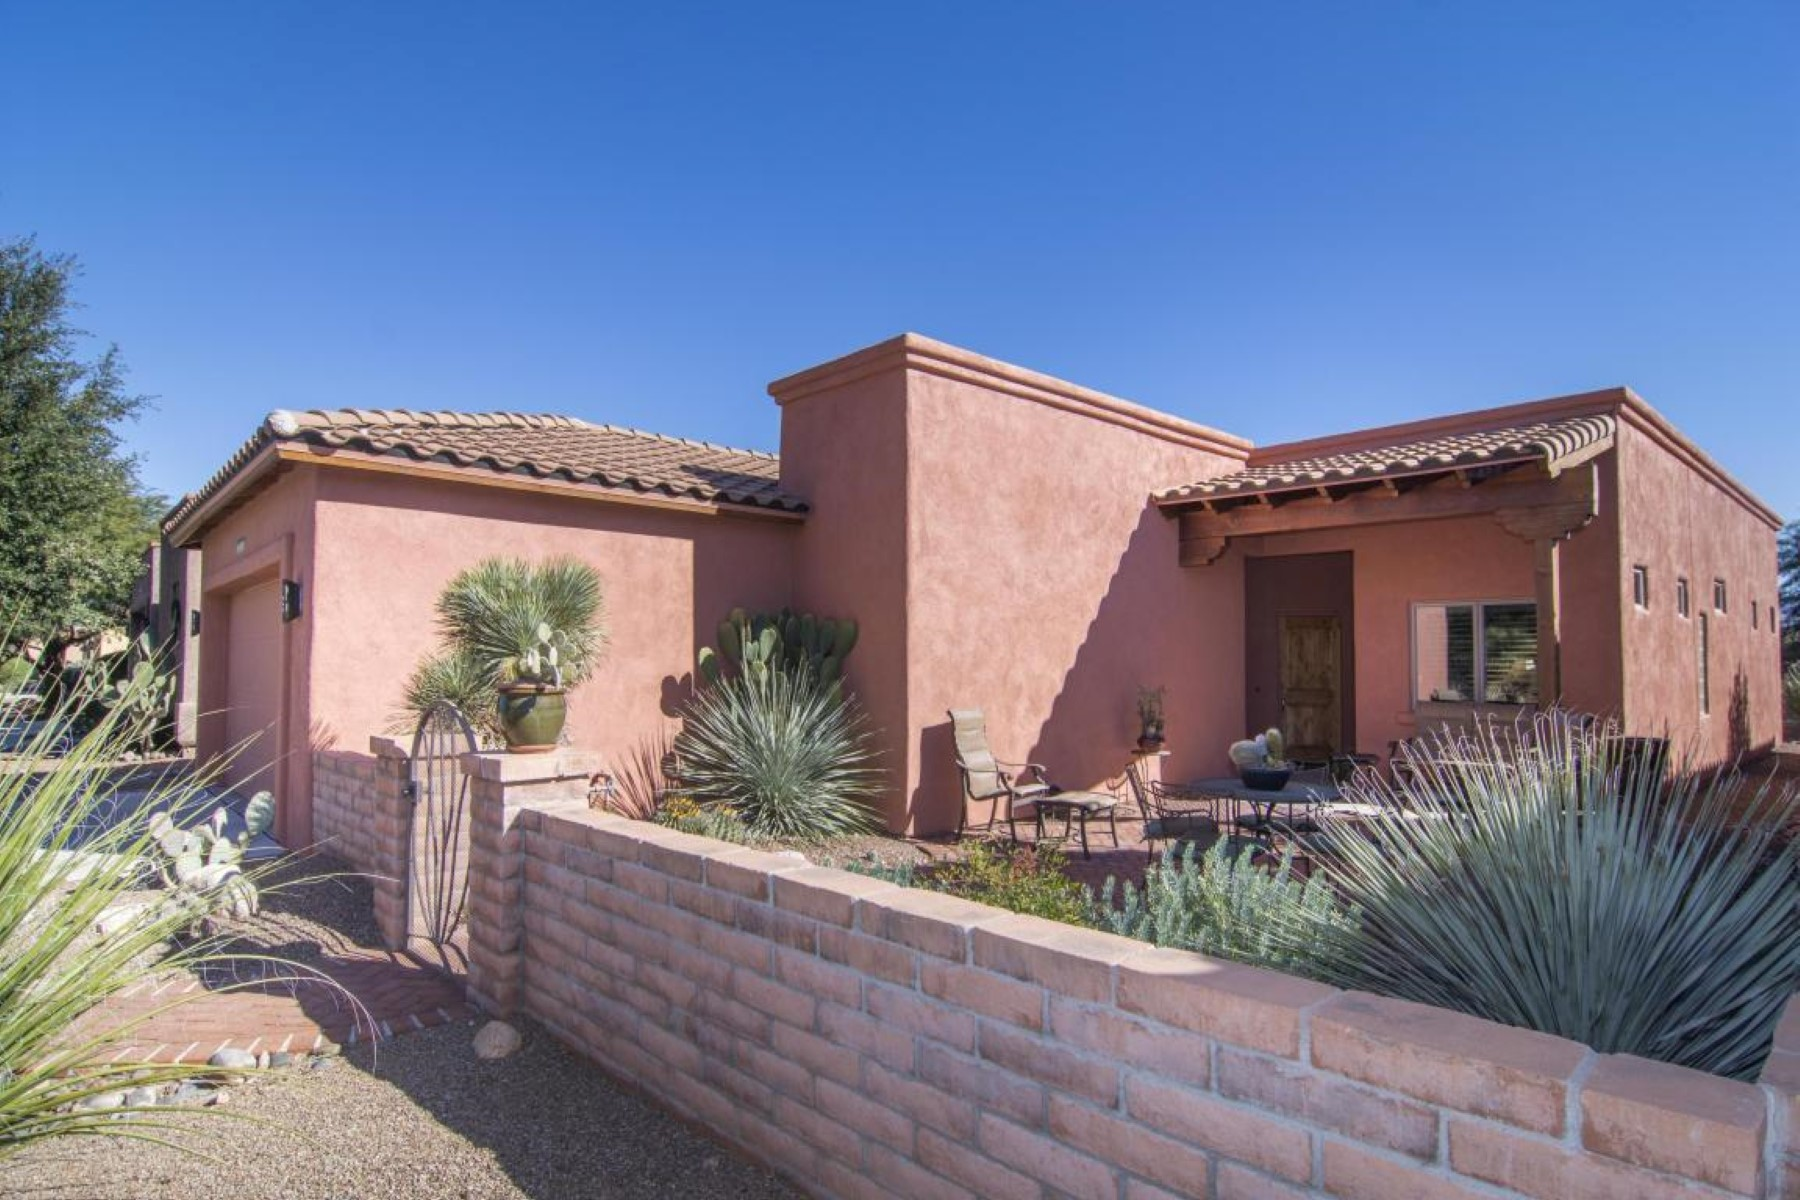 Single Family Home for Sale at Lovely home in the sought-after San Miguel subdivision 2219 Paseo Tumacacori Tubac, Arizona, 85646 United States